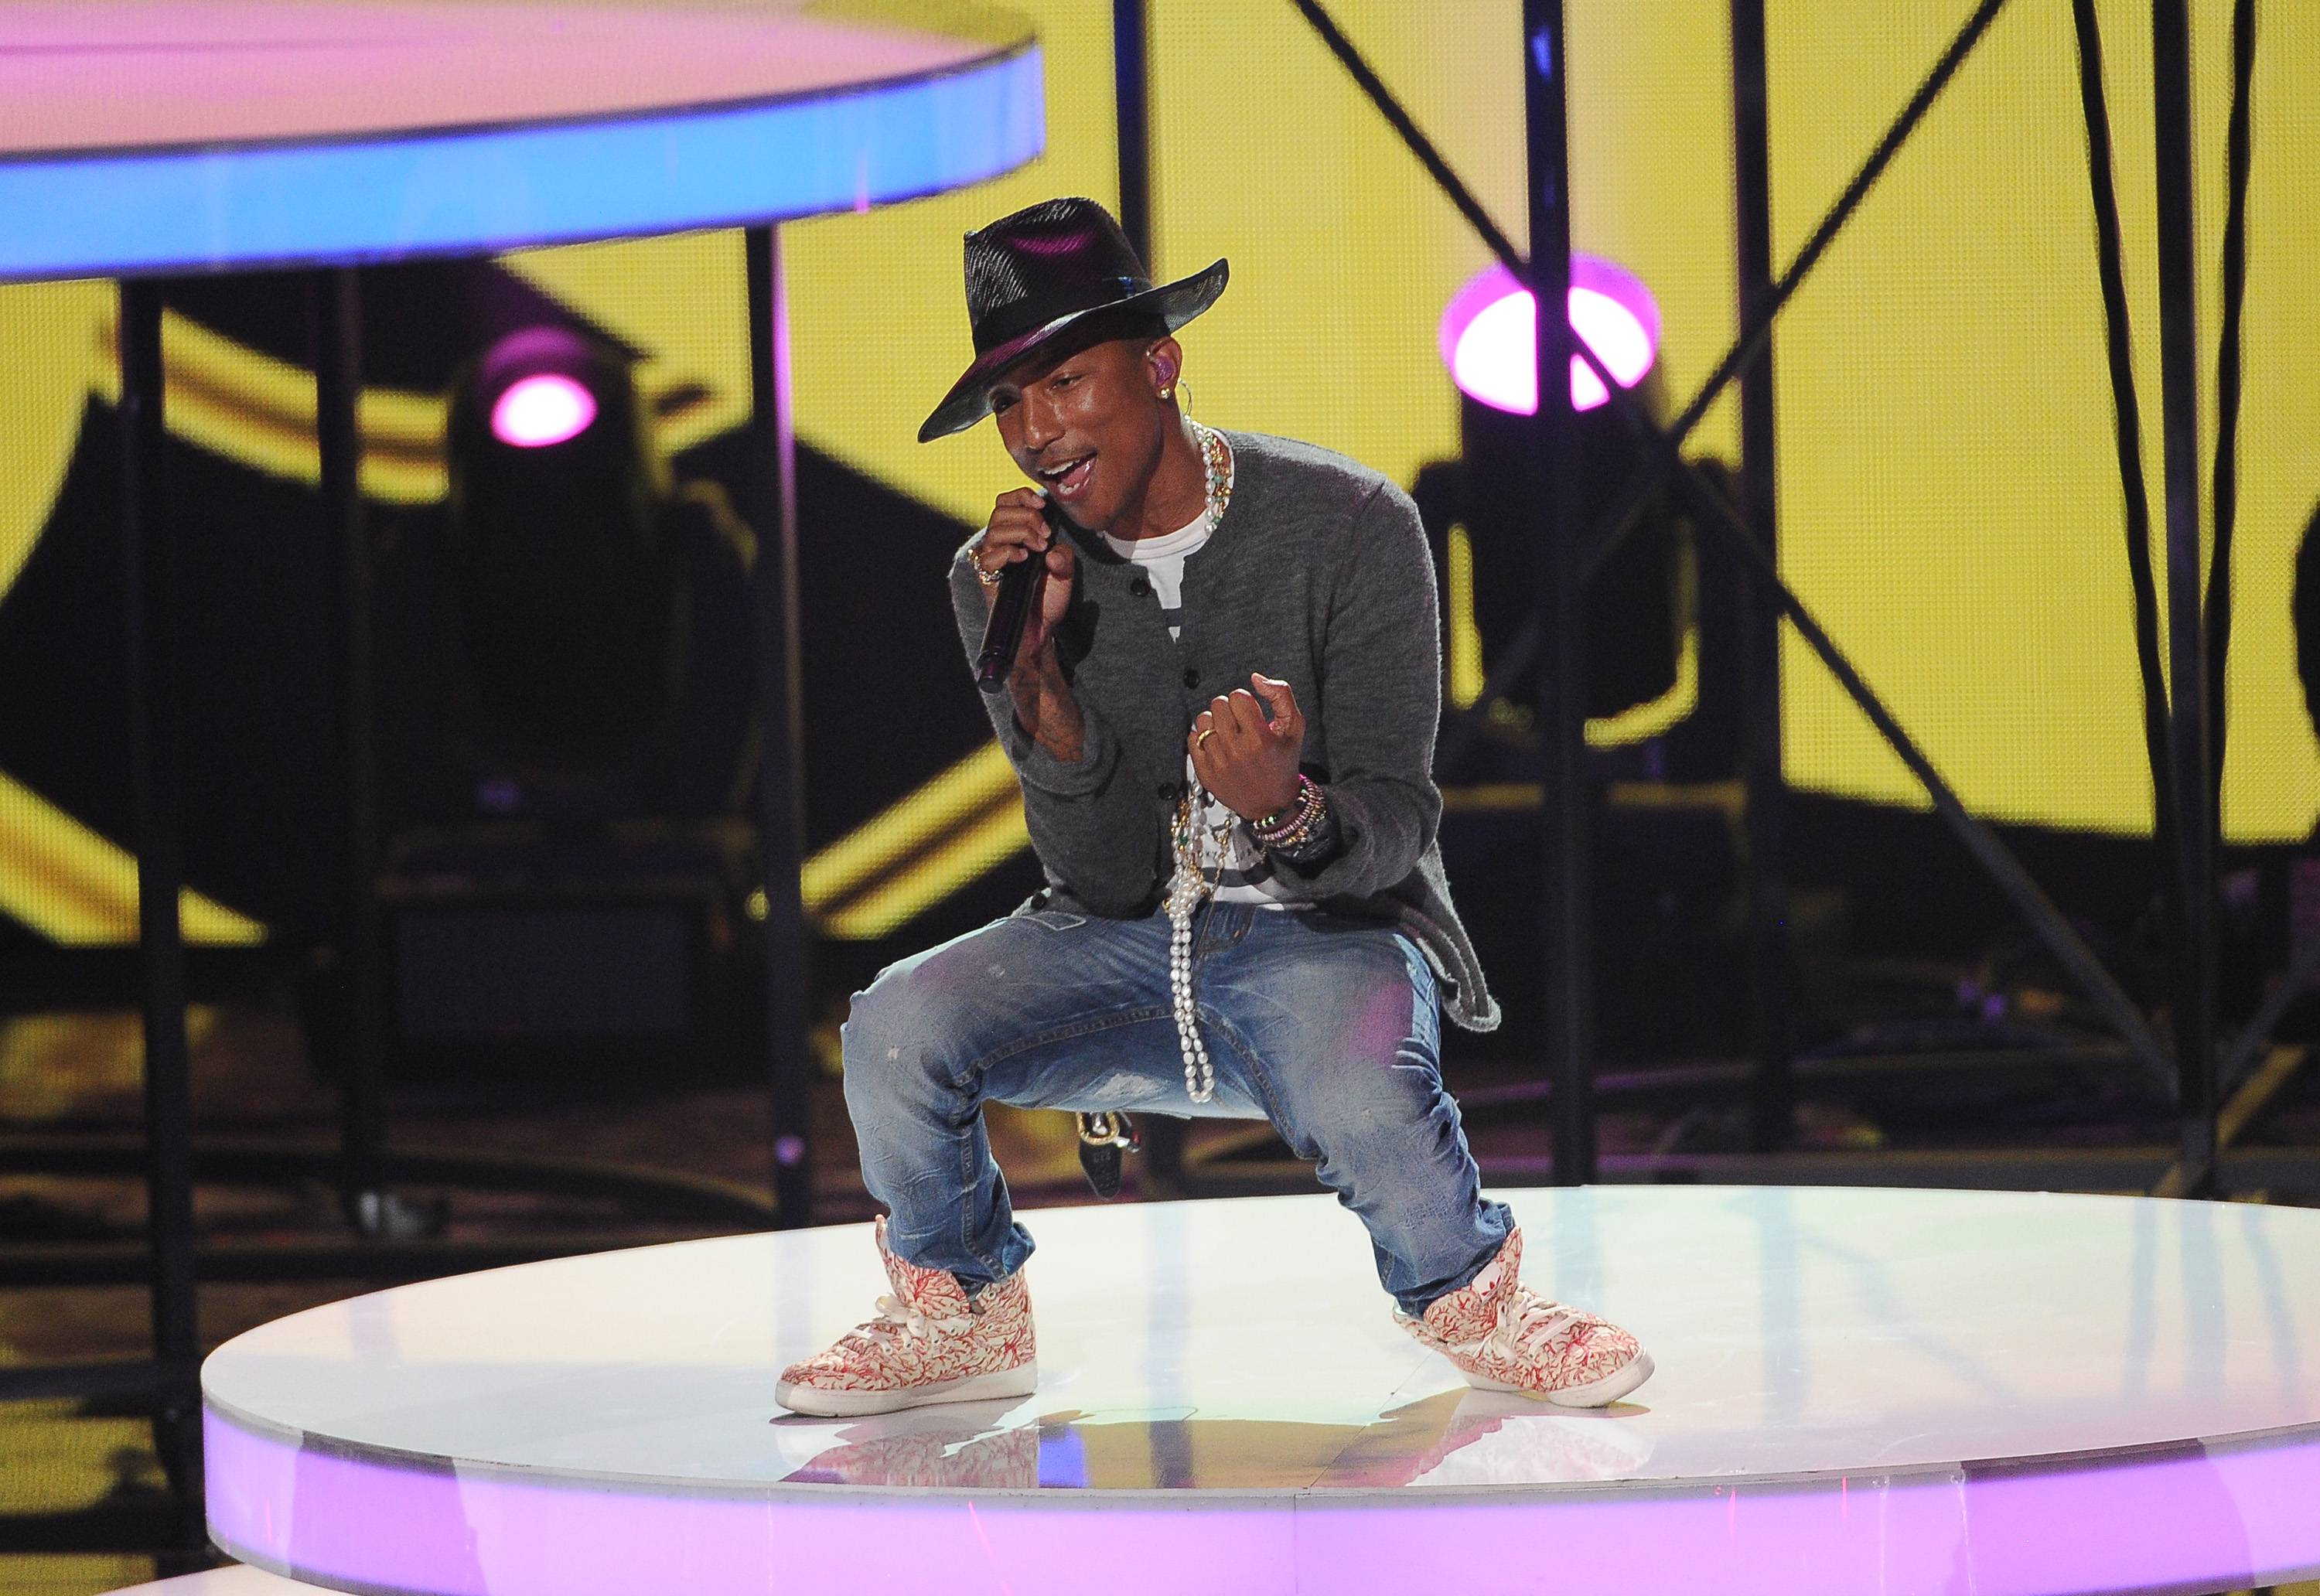 Pharrell Williams, who won the innovator award, performs at the iHeartRadio Music Awards at the Shrine Auditorium on Thursday in Los Angeles.